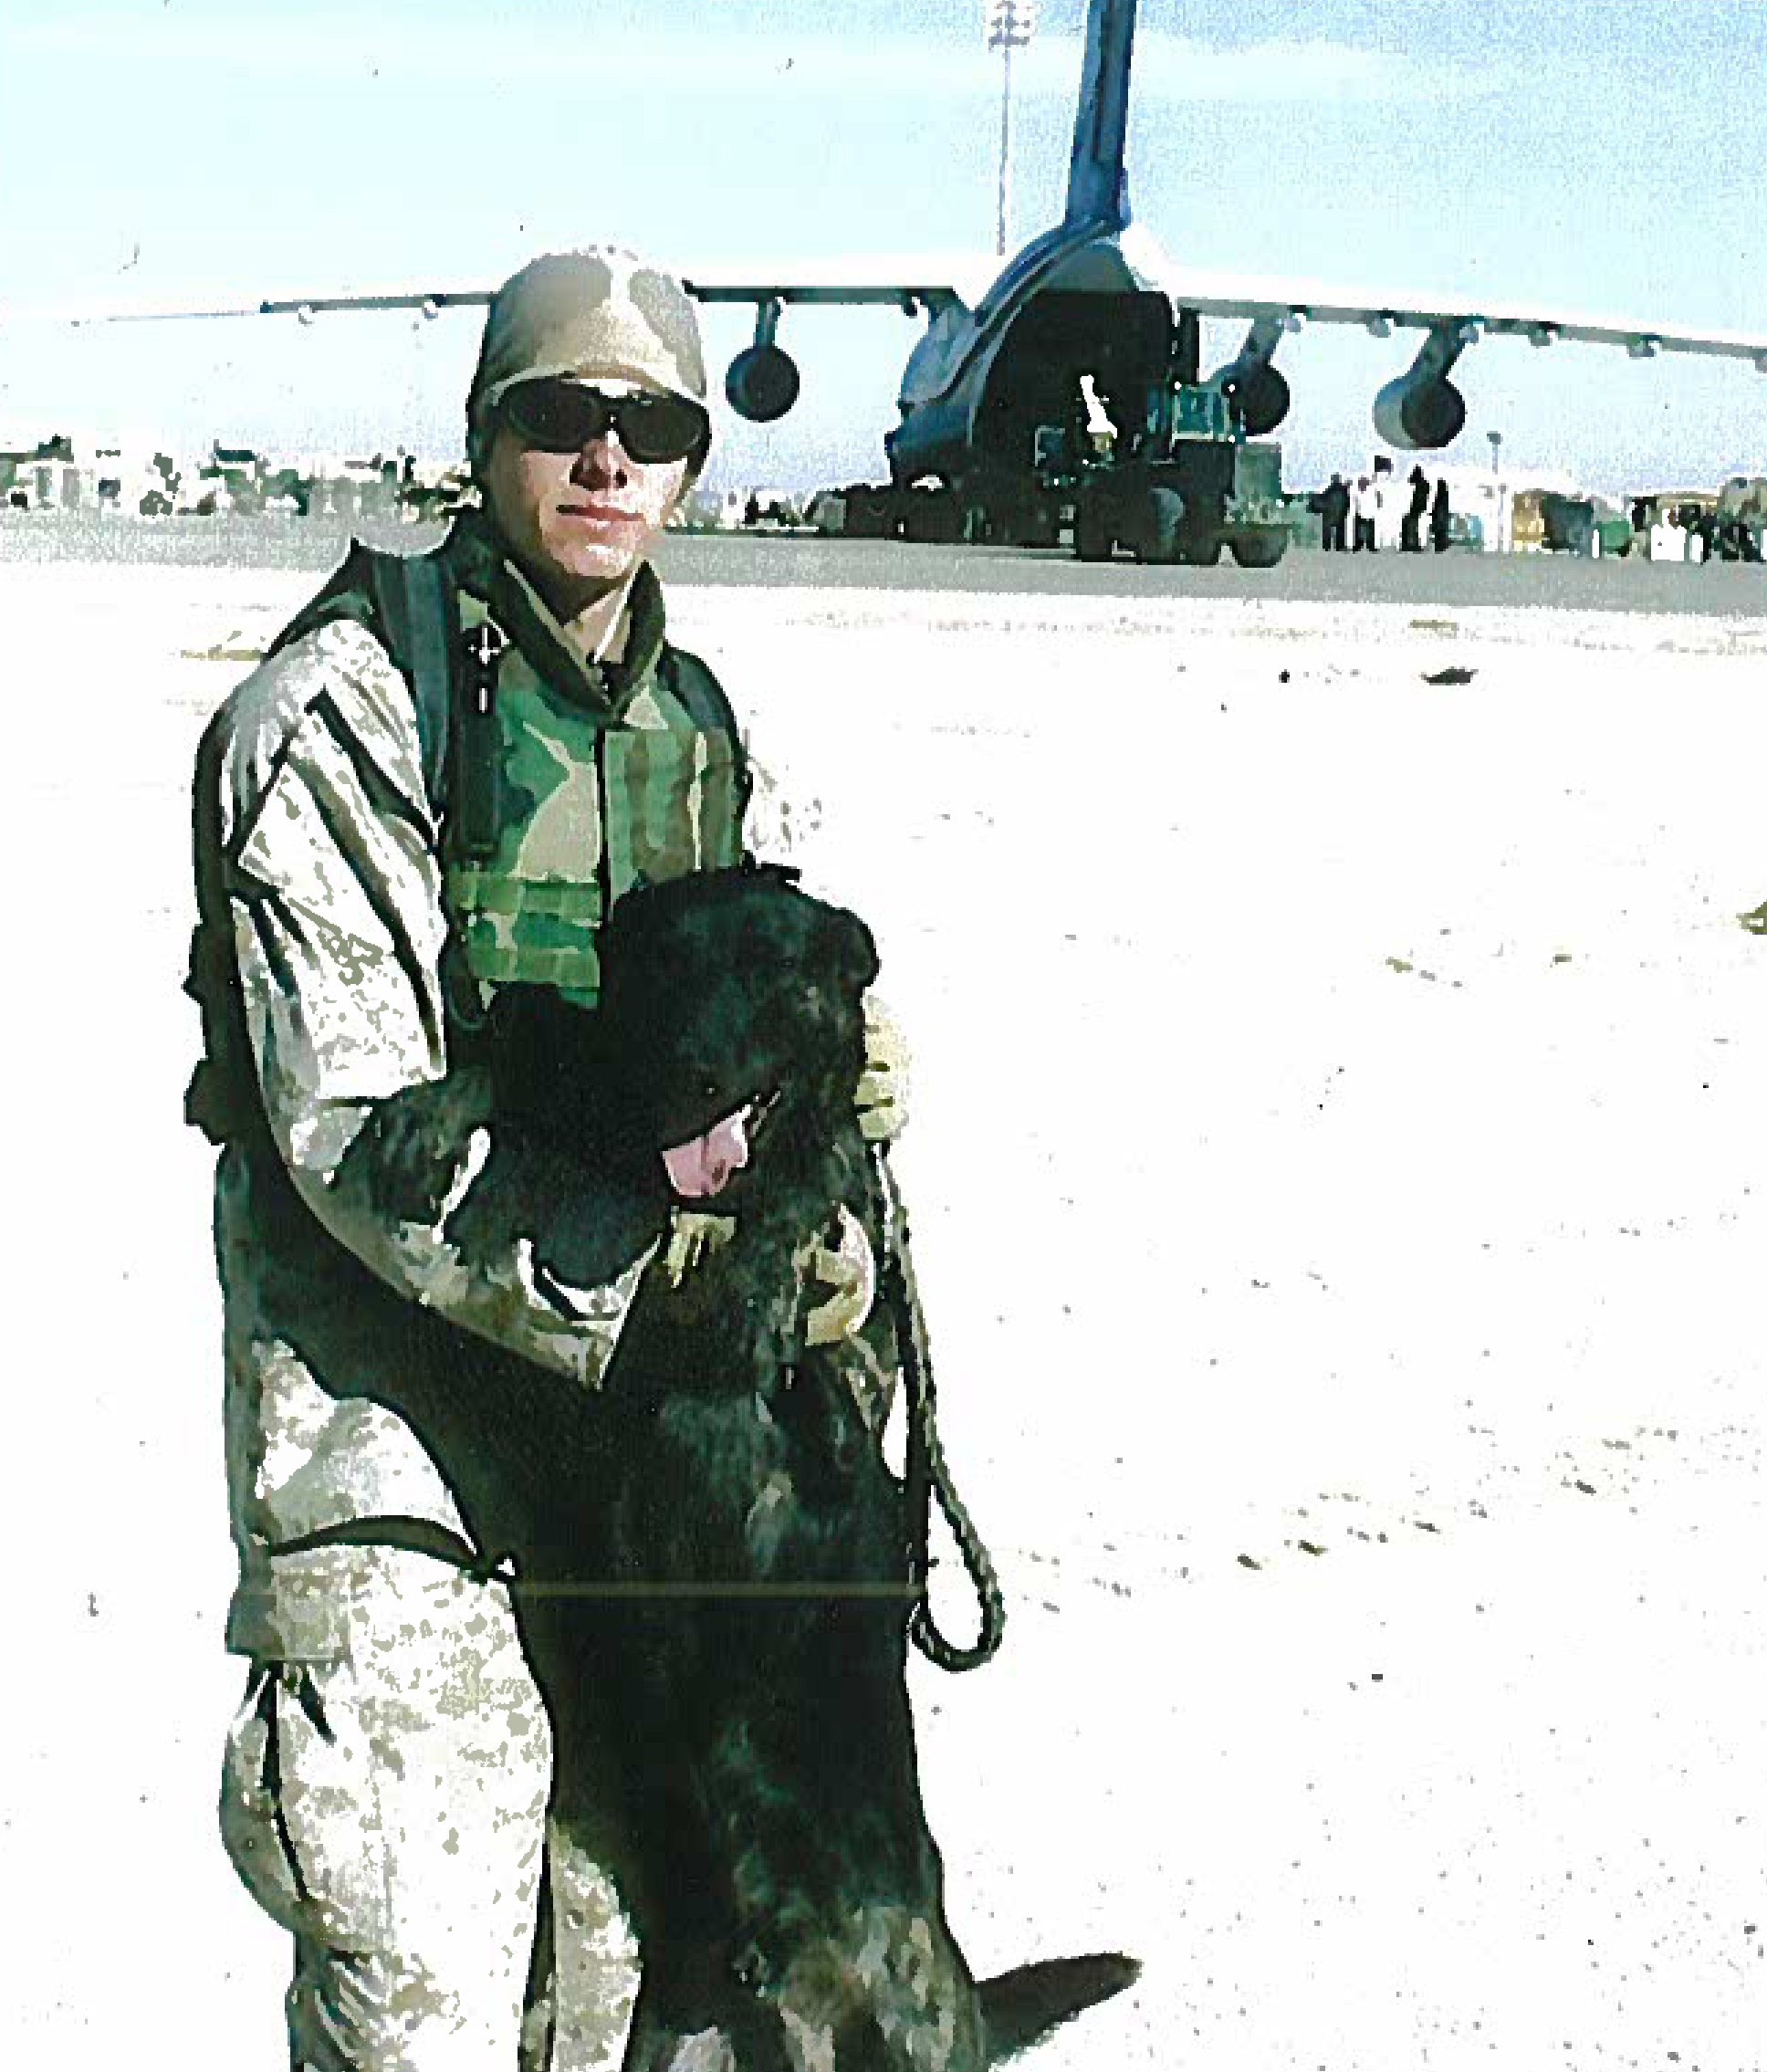 Chris completing his first combat deployment in 2004 with MWD Marco F281. Photo taken at Al Asad Iraq.